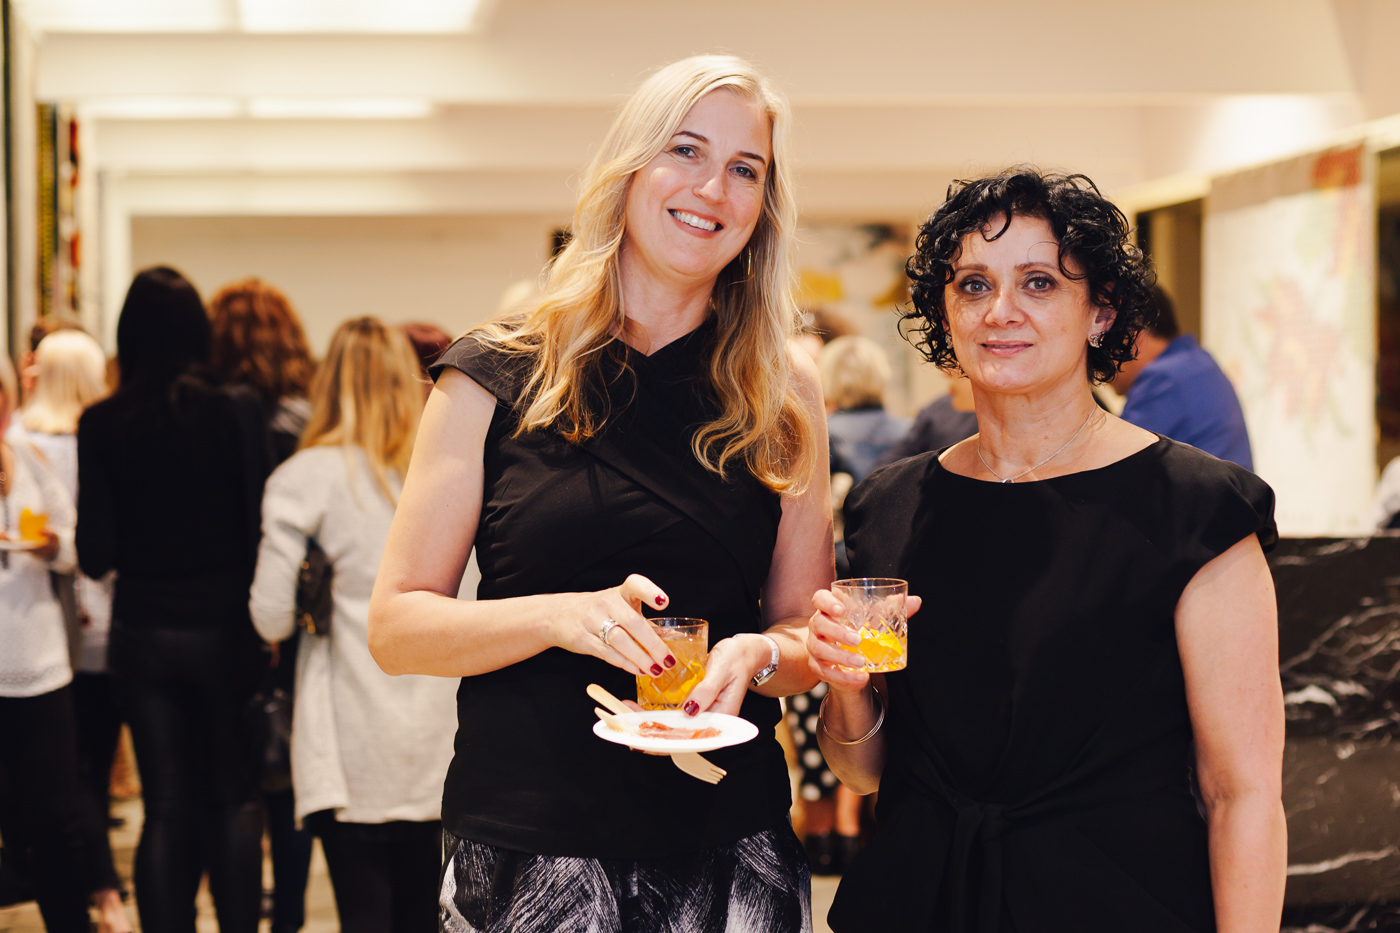 Tanya & Nicki of Designer Rugs || NEW AGAIN by Petrina Turner Design for Designer Rugs | The launch event